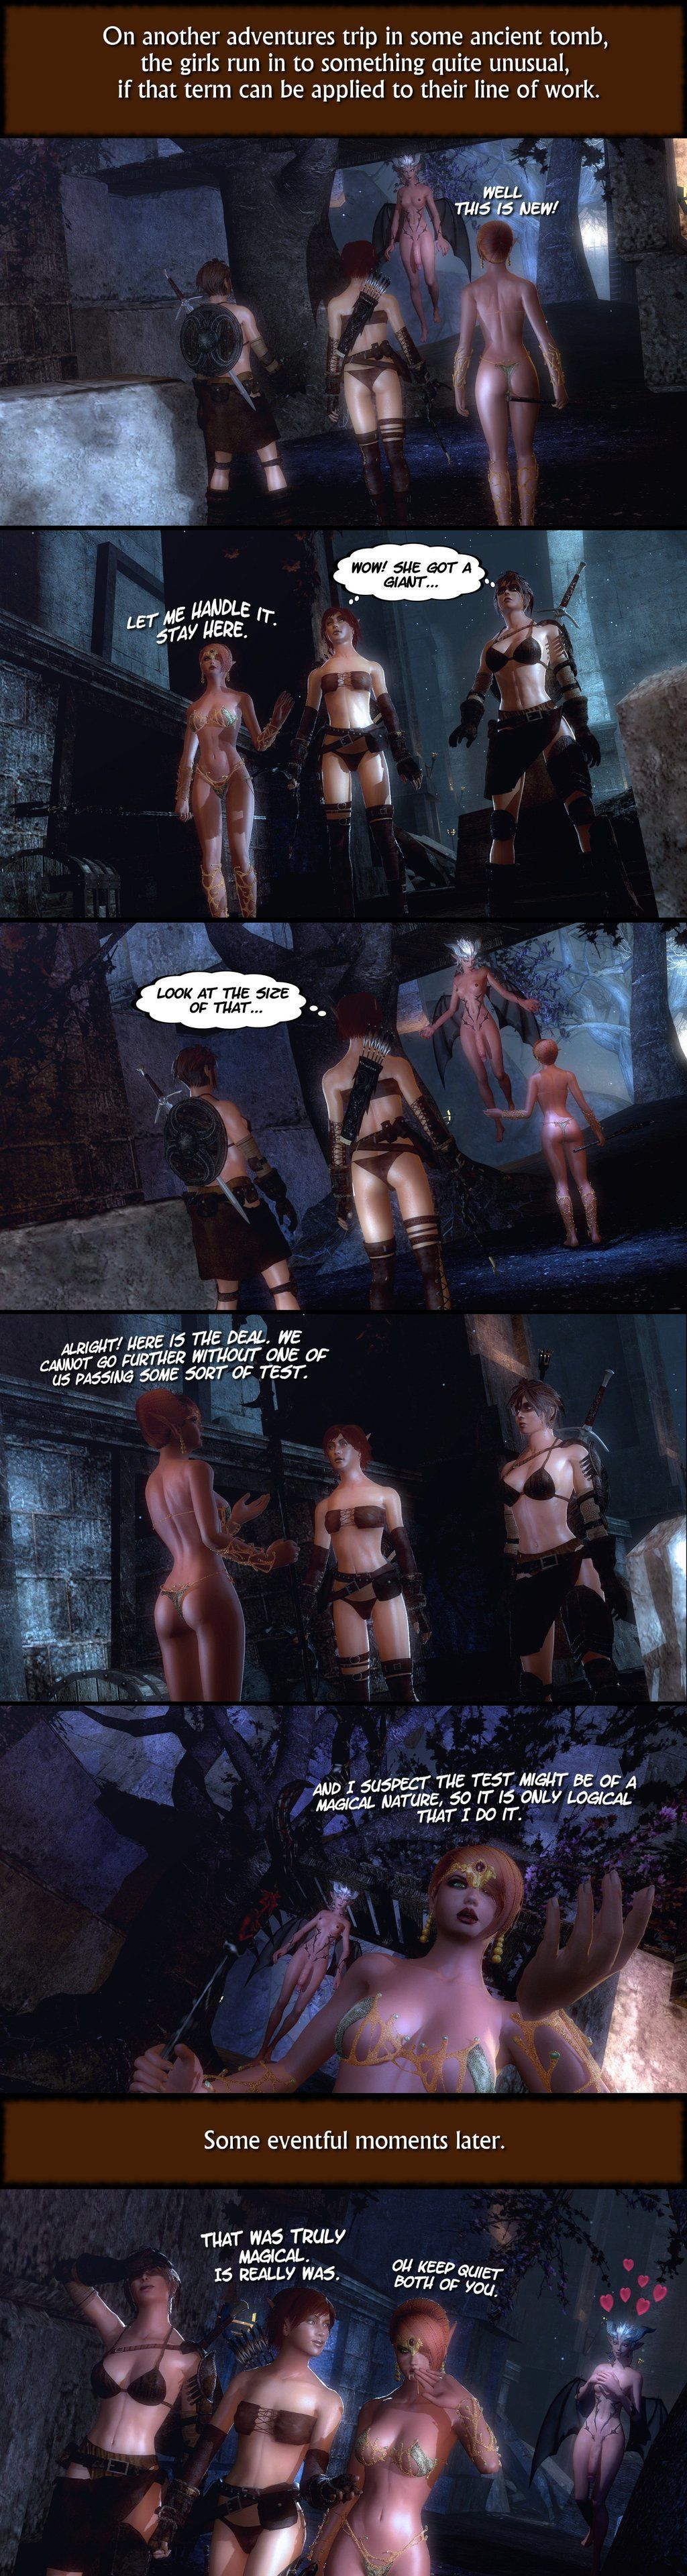 Updated gallery of the works of Rastifan Pt 2 (Comic Shorts) - part 3